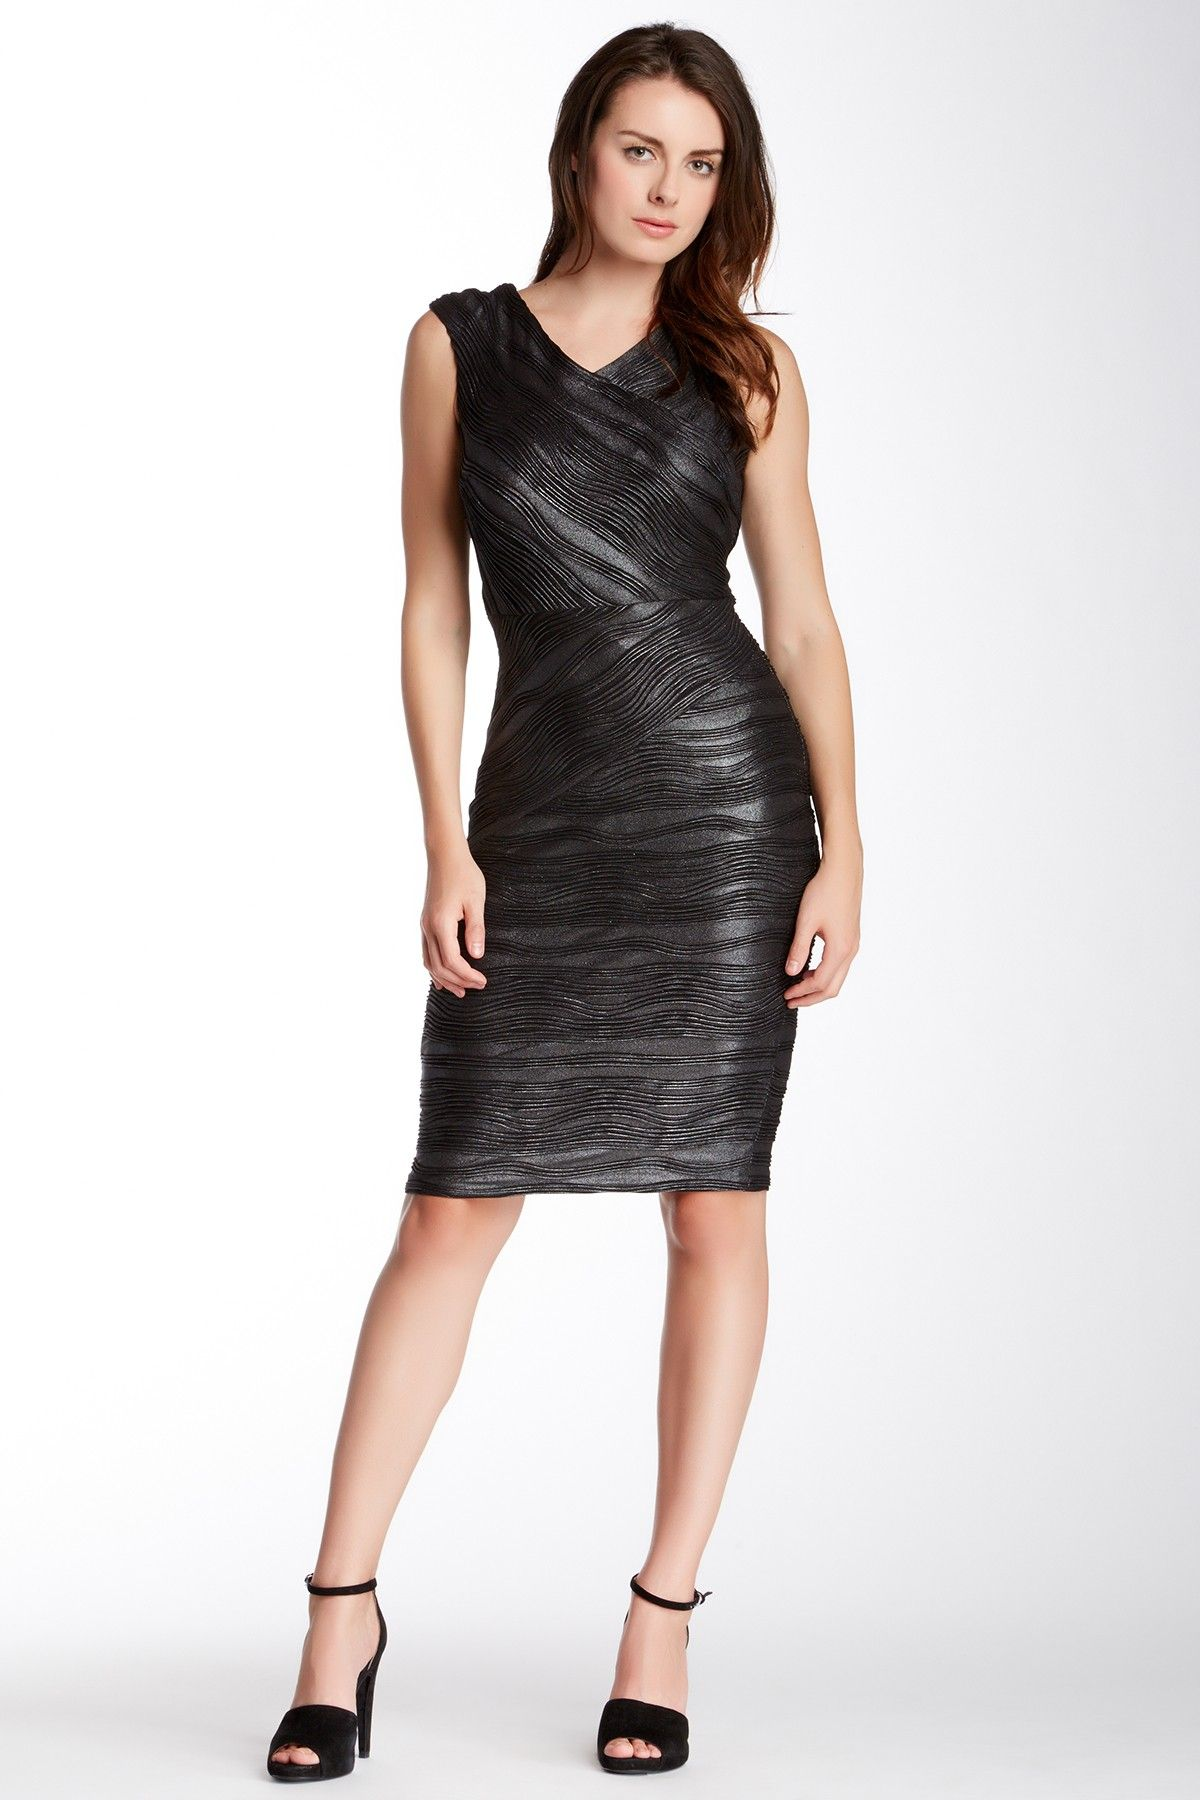 Jax textured cap sleeve dress by jax dresses on hautelook little jax textured cap sleeve dress by jax dresses on hautelook ombrellifo Gallery